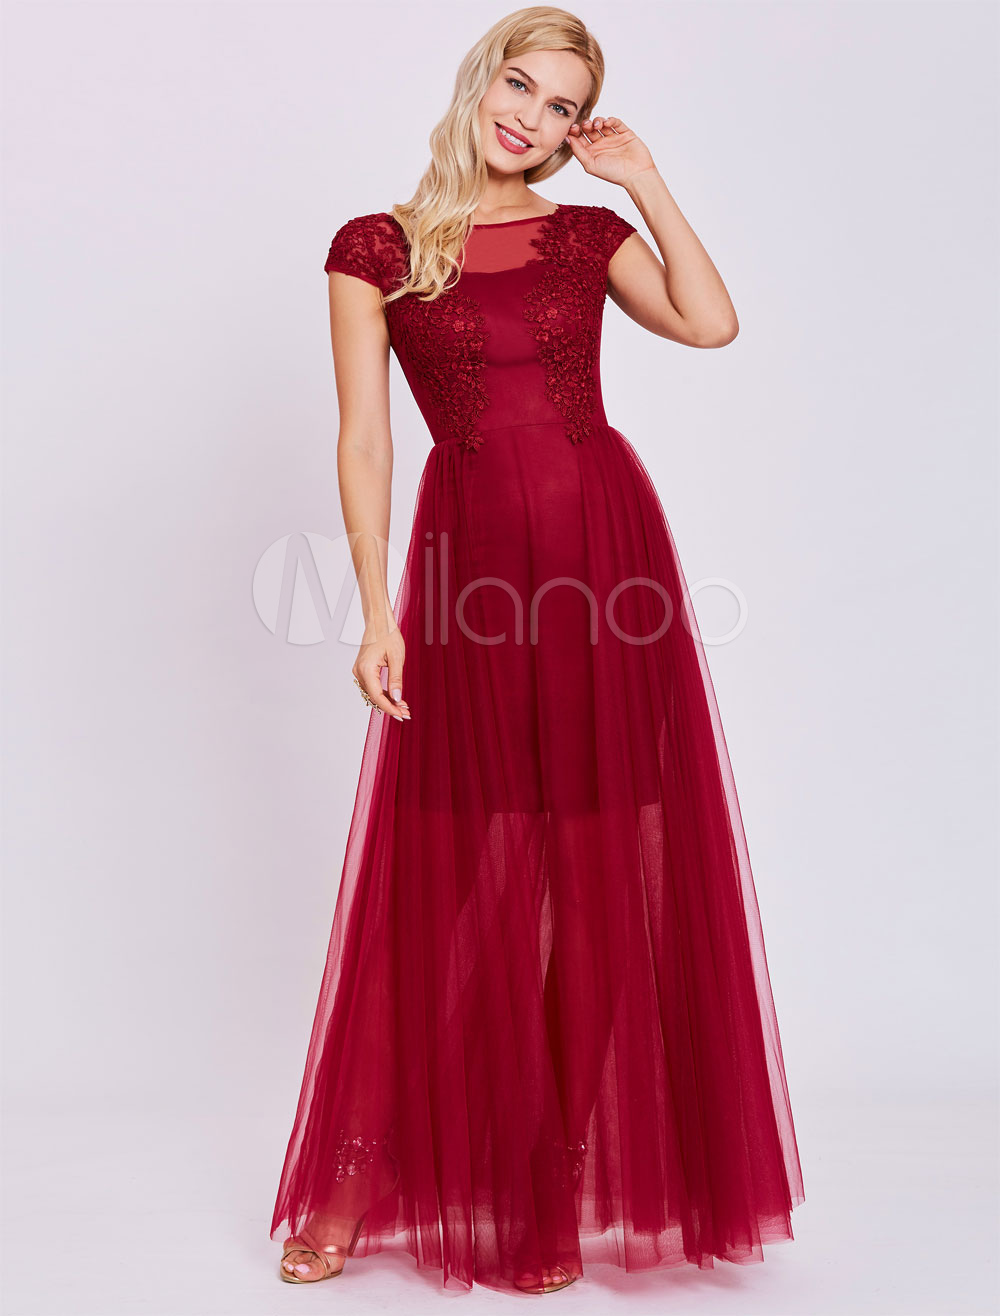 Burgundy Prom Dresses Long Tulle Formal Gowns Lace Applique Illusion Floor Length Special Occasion Dress (Wedding Cheap Party Dress) photo